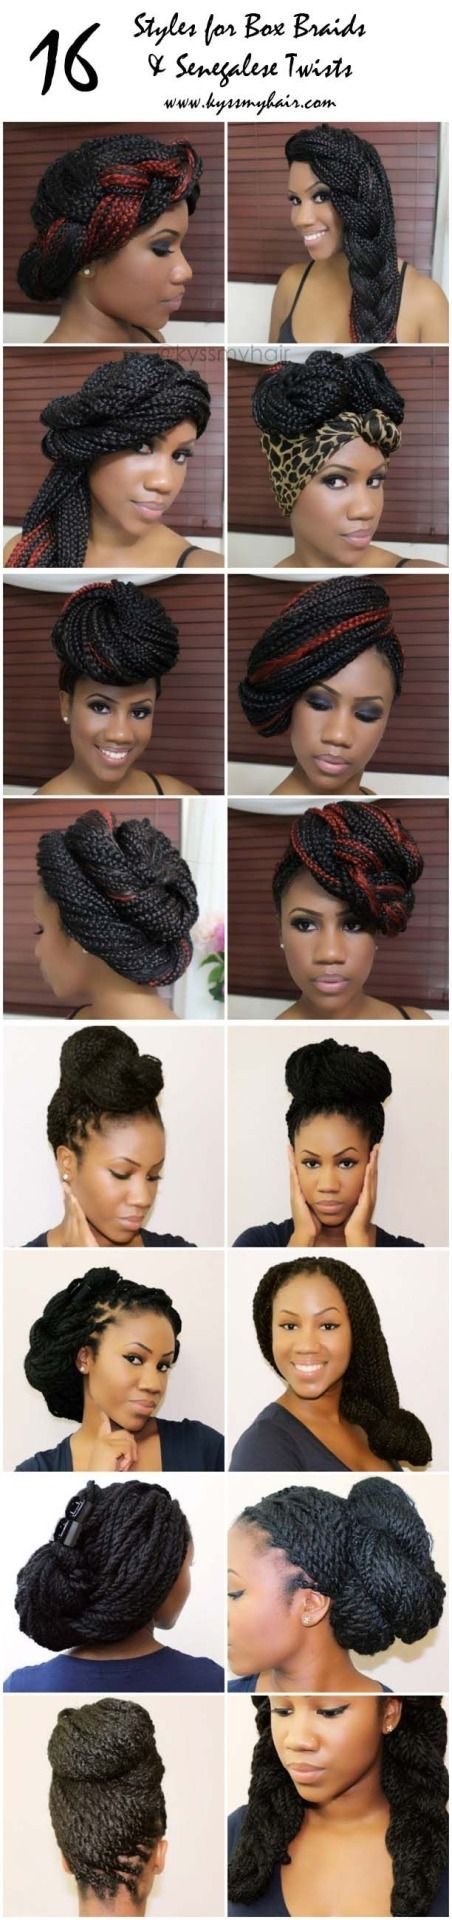 16 Styles for box braids and marley/Senegalese twists. Click the photo! Kyss My Hair on YouTube